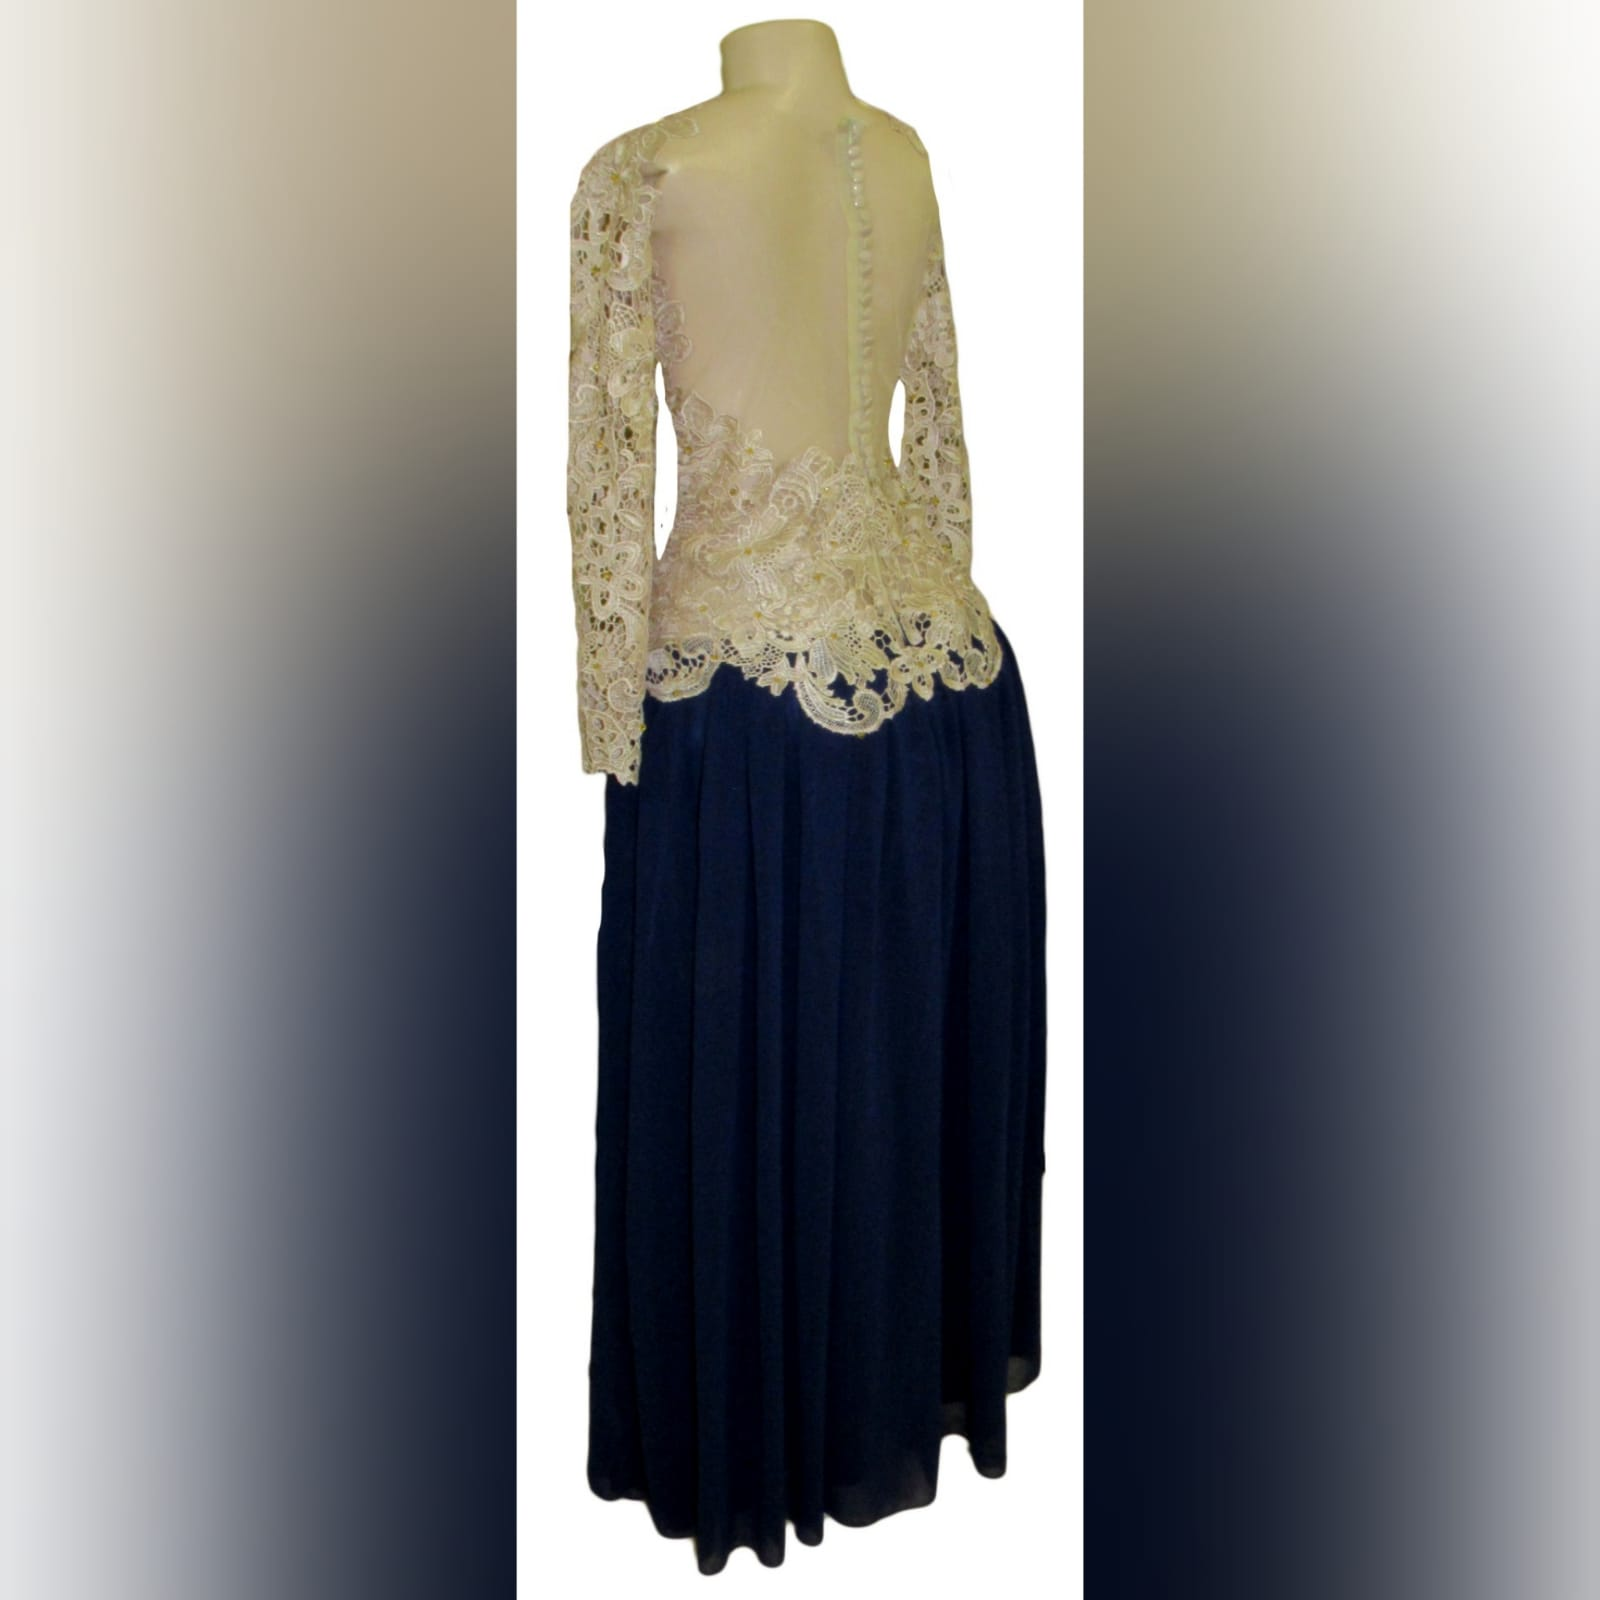 Navy blue and champagne lace prom dress 6 this evening dress design is a classic and can be worn to several occasions. Navy blue and champagne lace prom dress, with a lace bodice and long sleeves, illusion open back detailed with buttons and gold beads. Bottom in a navy blue gathered chiffon adding a great movement to the dress.